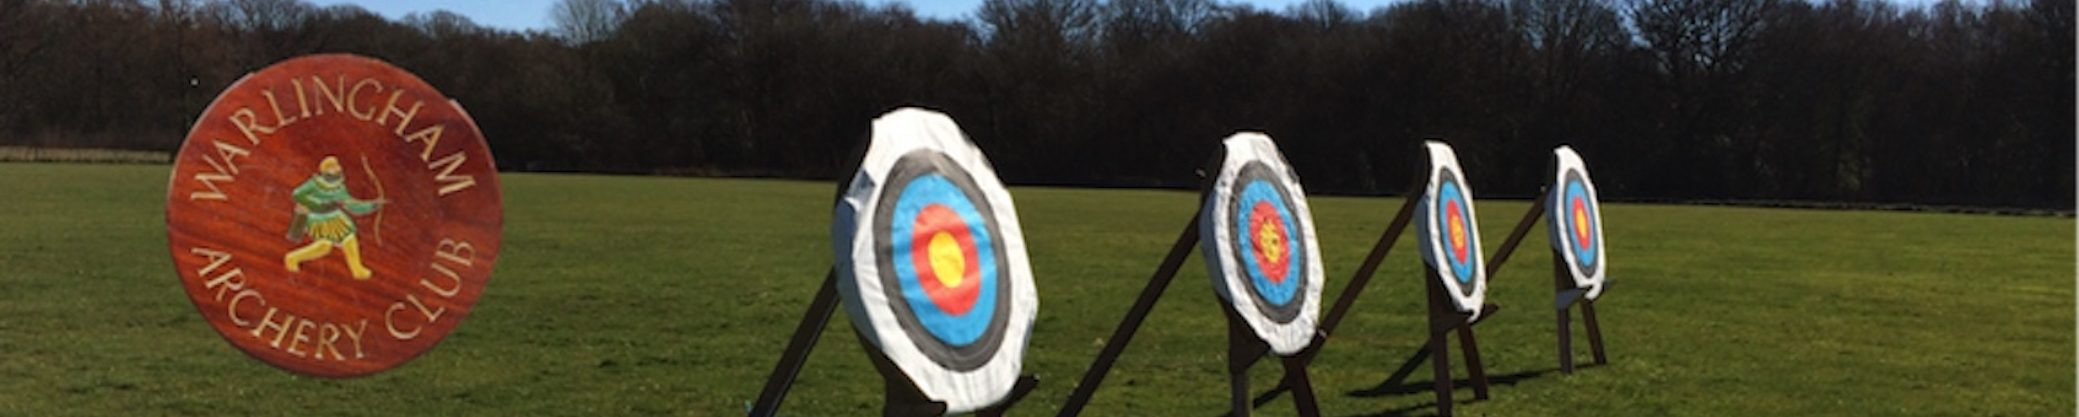 Warlingham Archery Club